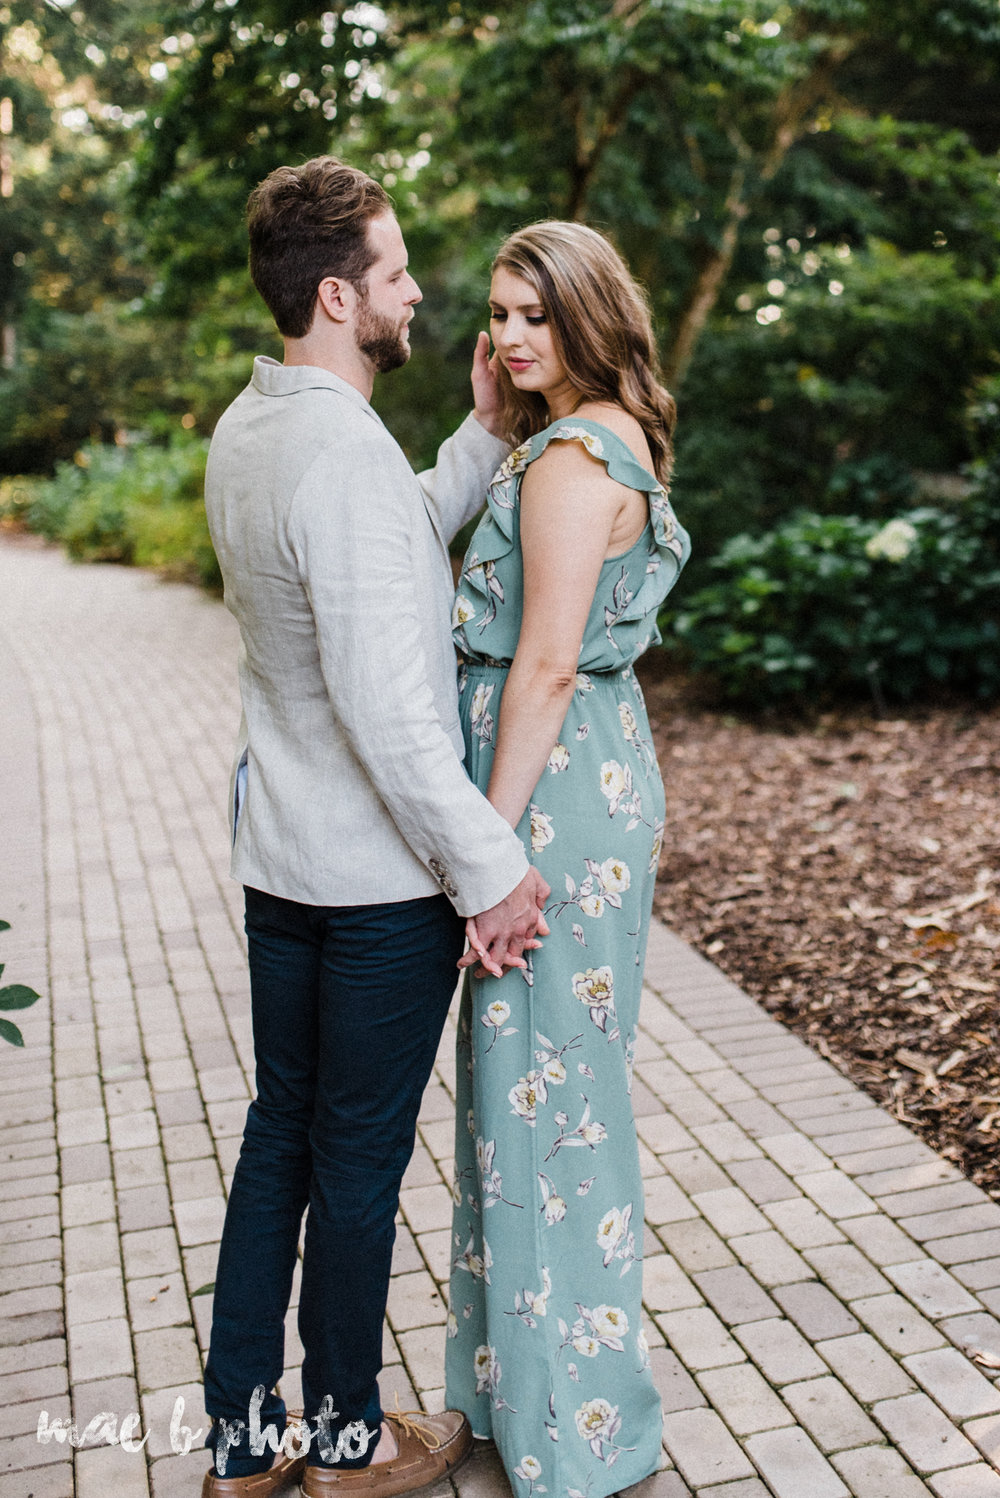 lauren and steve's summer engagement session at the rose gardens and lanterman's mill in mill creek park in youngstown ohio photographed by youngstown wedding photographer mae b photo-17.jpg